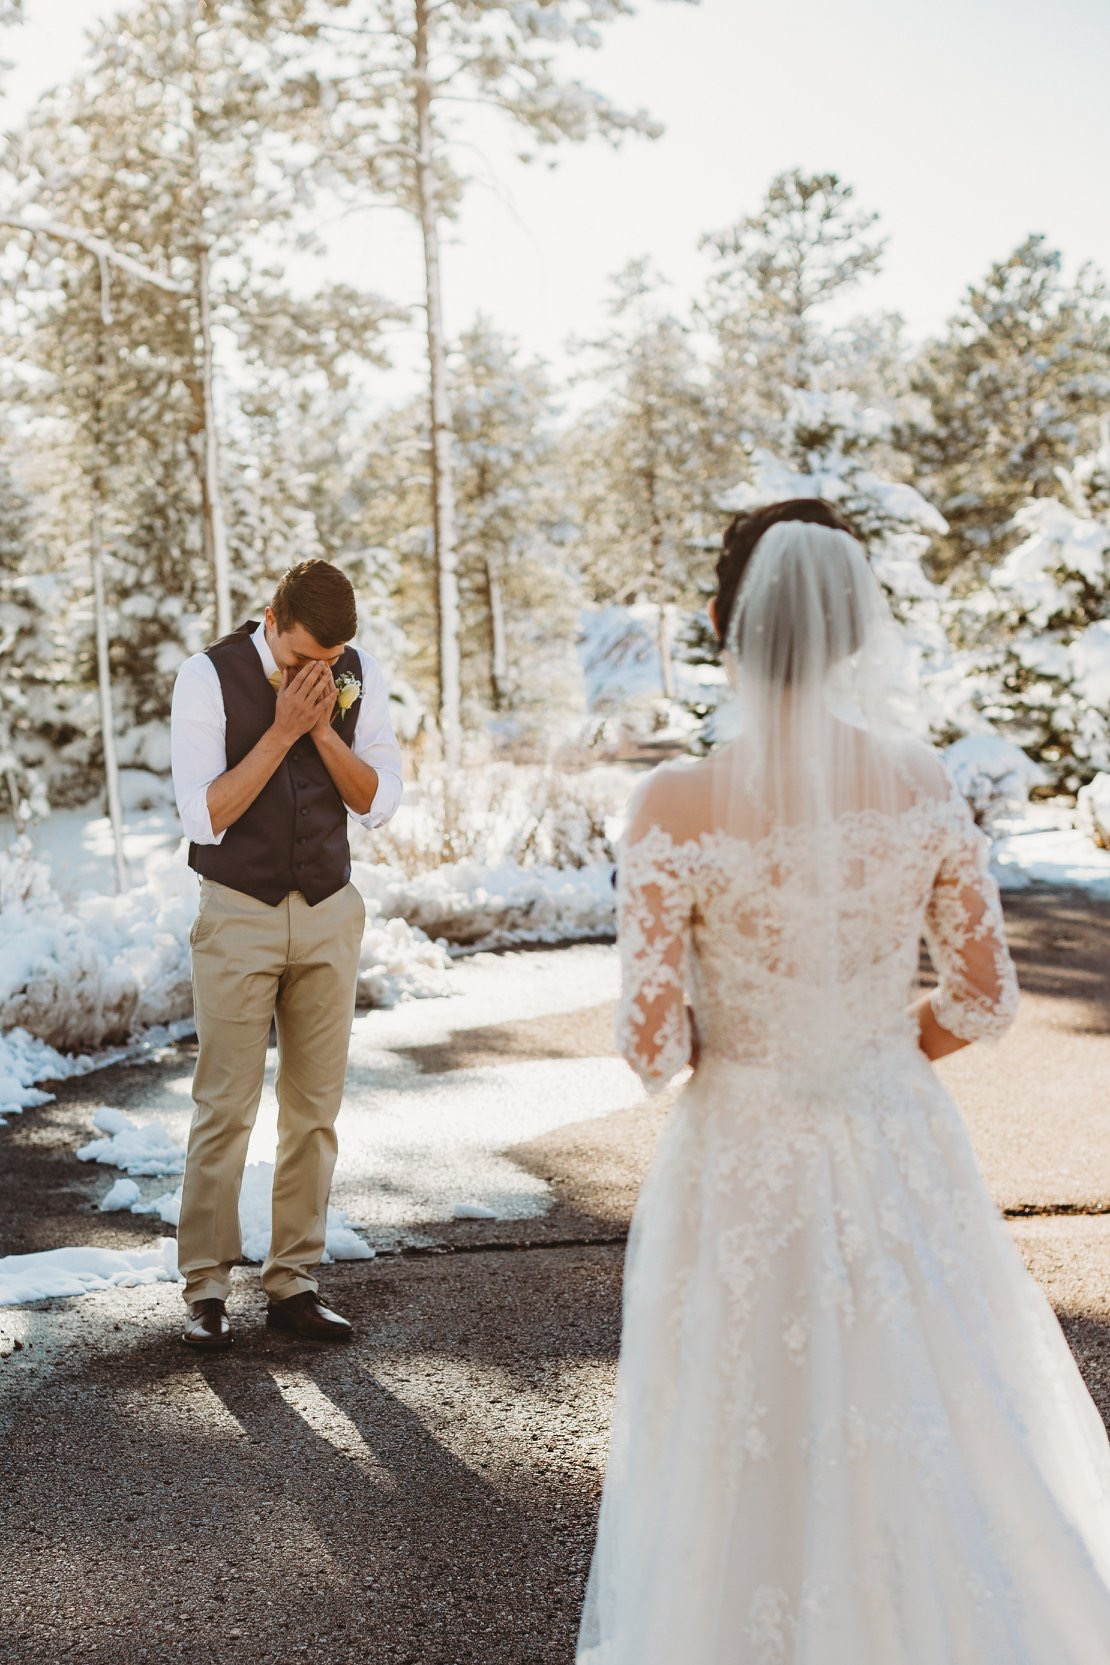 Groom Looking at Real Bride Wearing Off-the-Shoulder Lace Wedding Dress Called Bree by Maggie Sottero